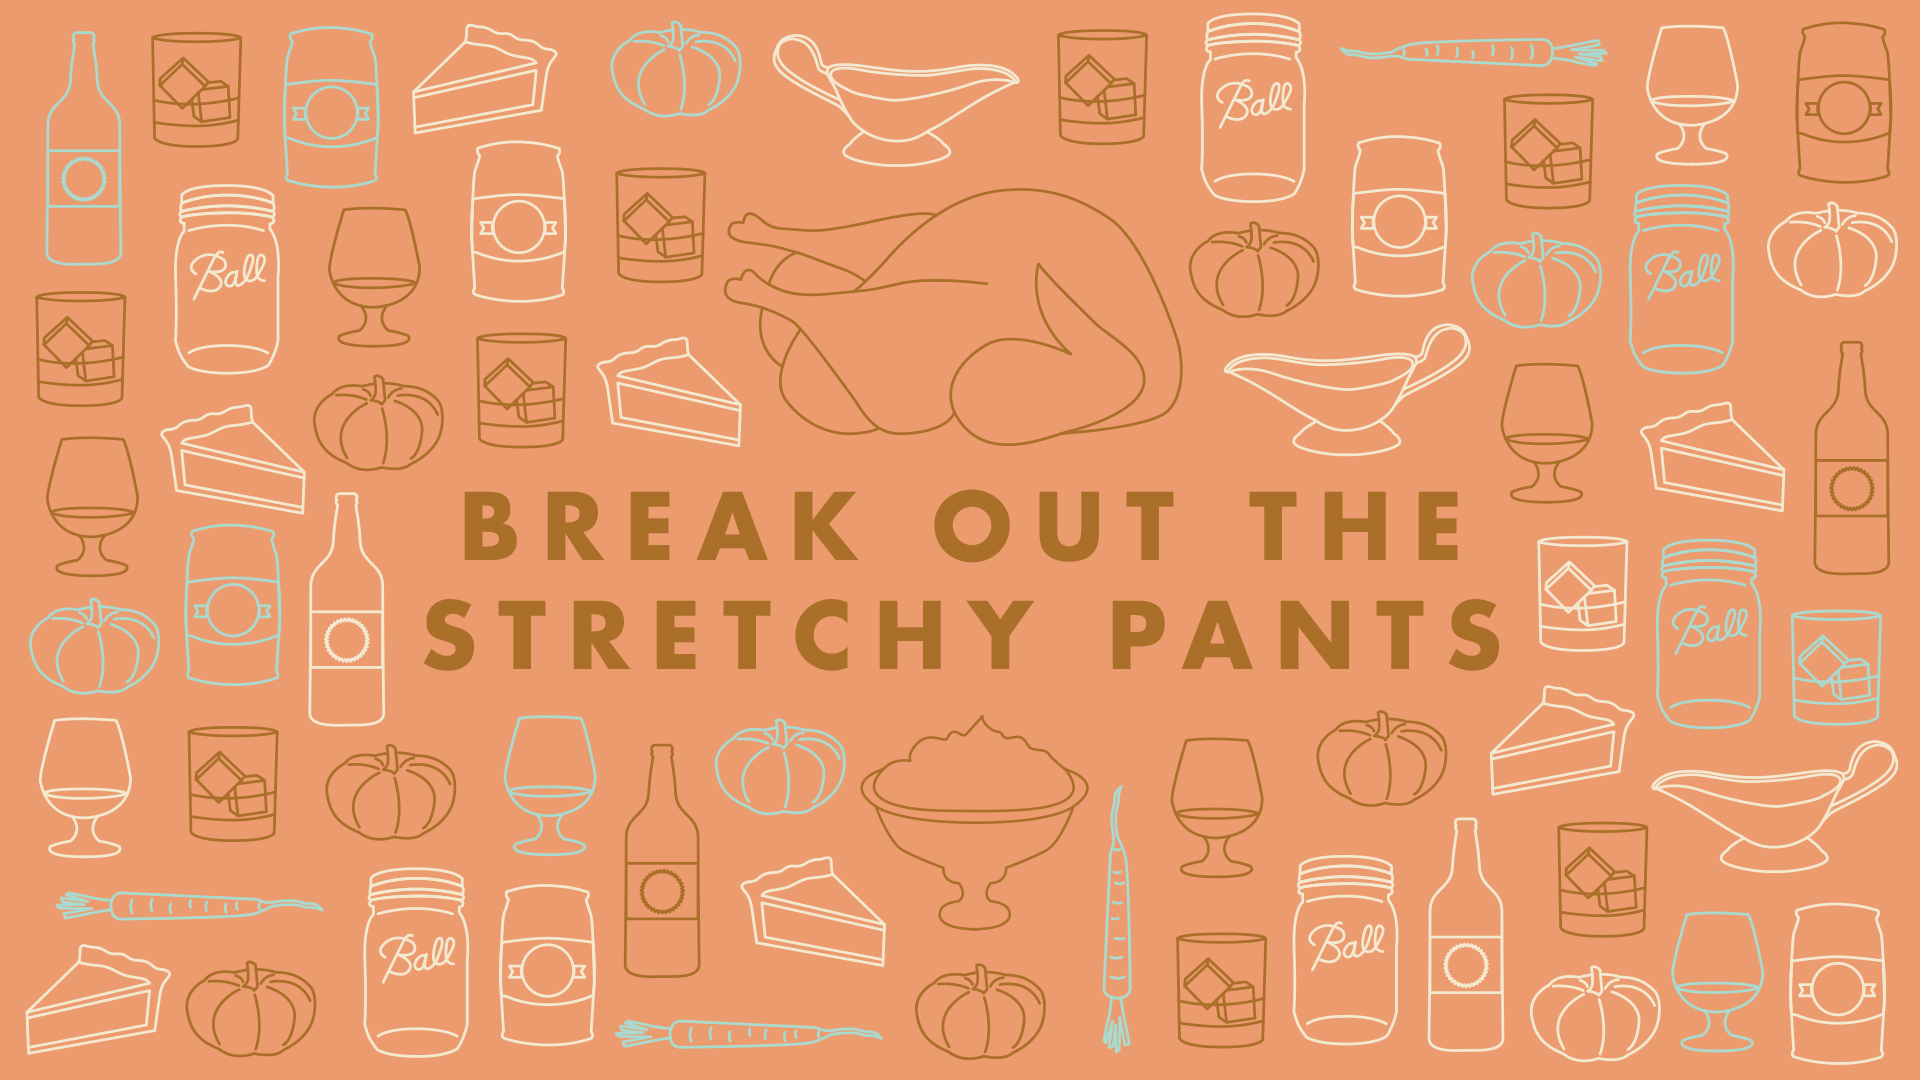 Break Out the Stretchy Pants desktop wallpaper | Freckle & Fair